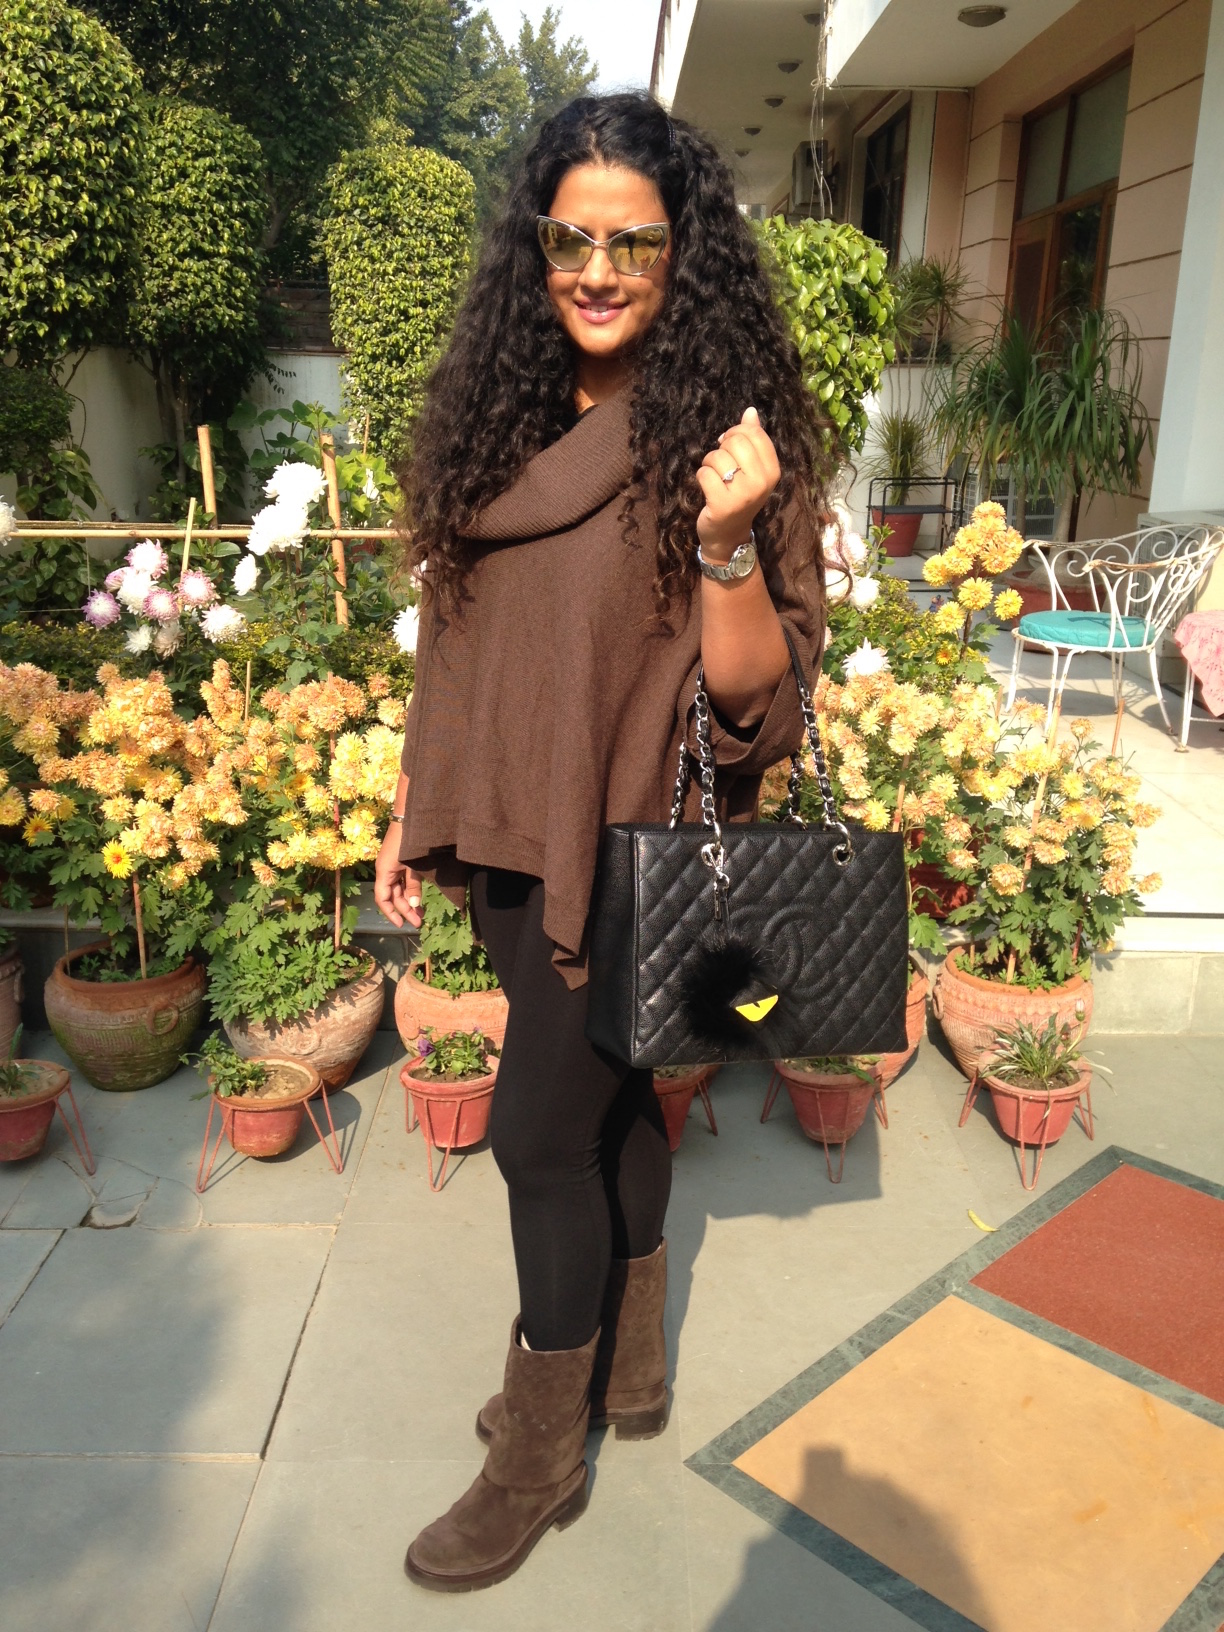 Poncho Sweater Ralph Laure, Boots Louis Vuitton, Tights Asos, Bag Chanel, Sunglasses Tom Ford, Bug Fendi, Watch Cartier